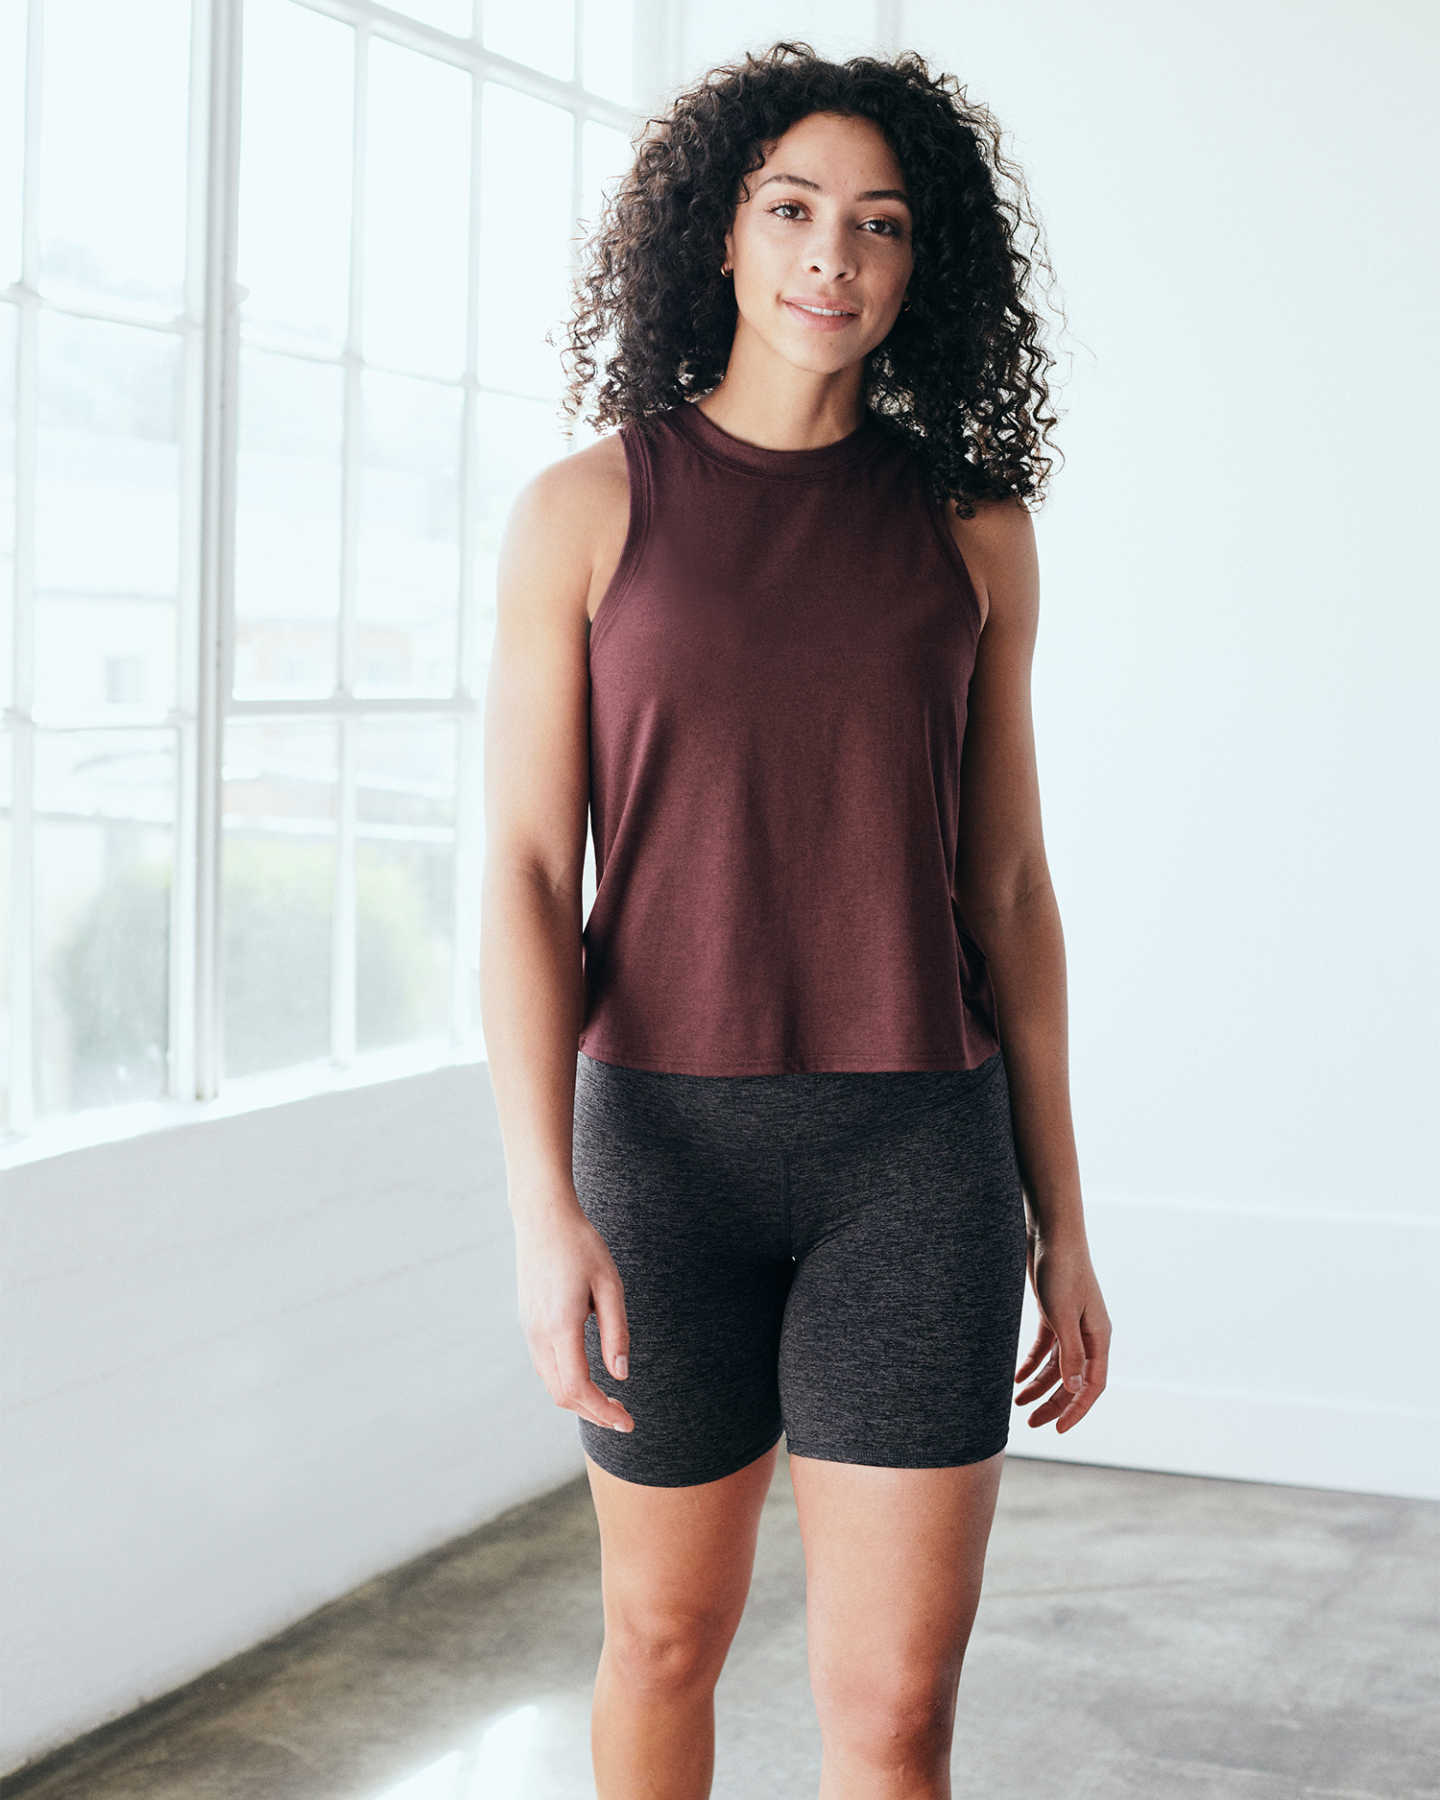 Flowknit Ultra-Soft Performance Tank - Burgundy - 12